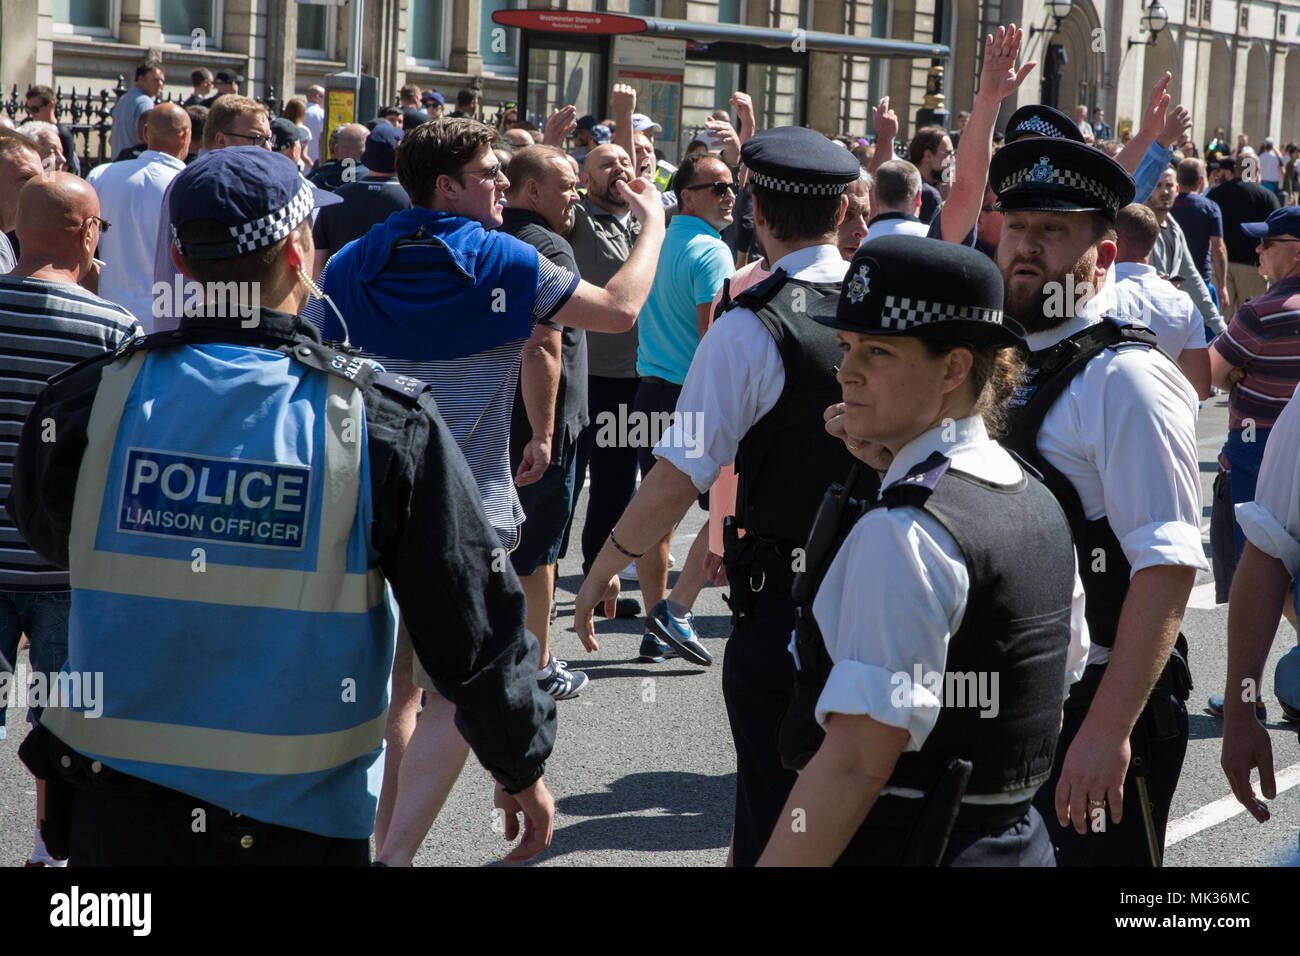 London, UK. 6th May, 2018. Supporters of the far-right Democratic Football Lads Alliance are moved on by police officers after attacking a counter-protest by anti-racist and anti-fascist groups to their 'Day of Freedom' in Whitehall. Credit: Mark Kerrison/Alamy Live News - Stock Image